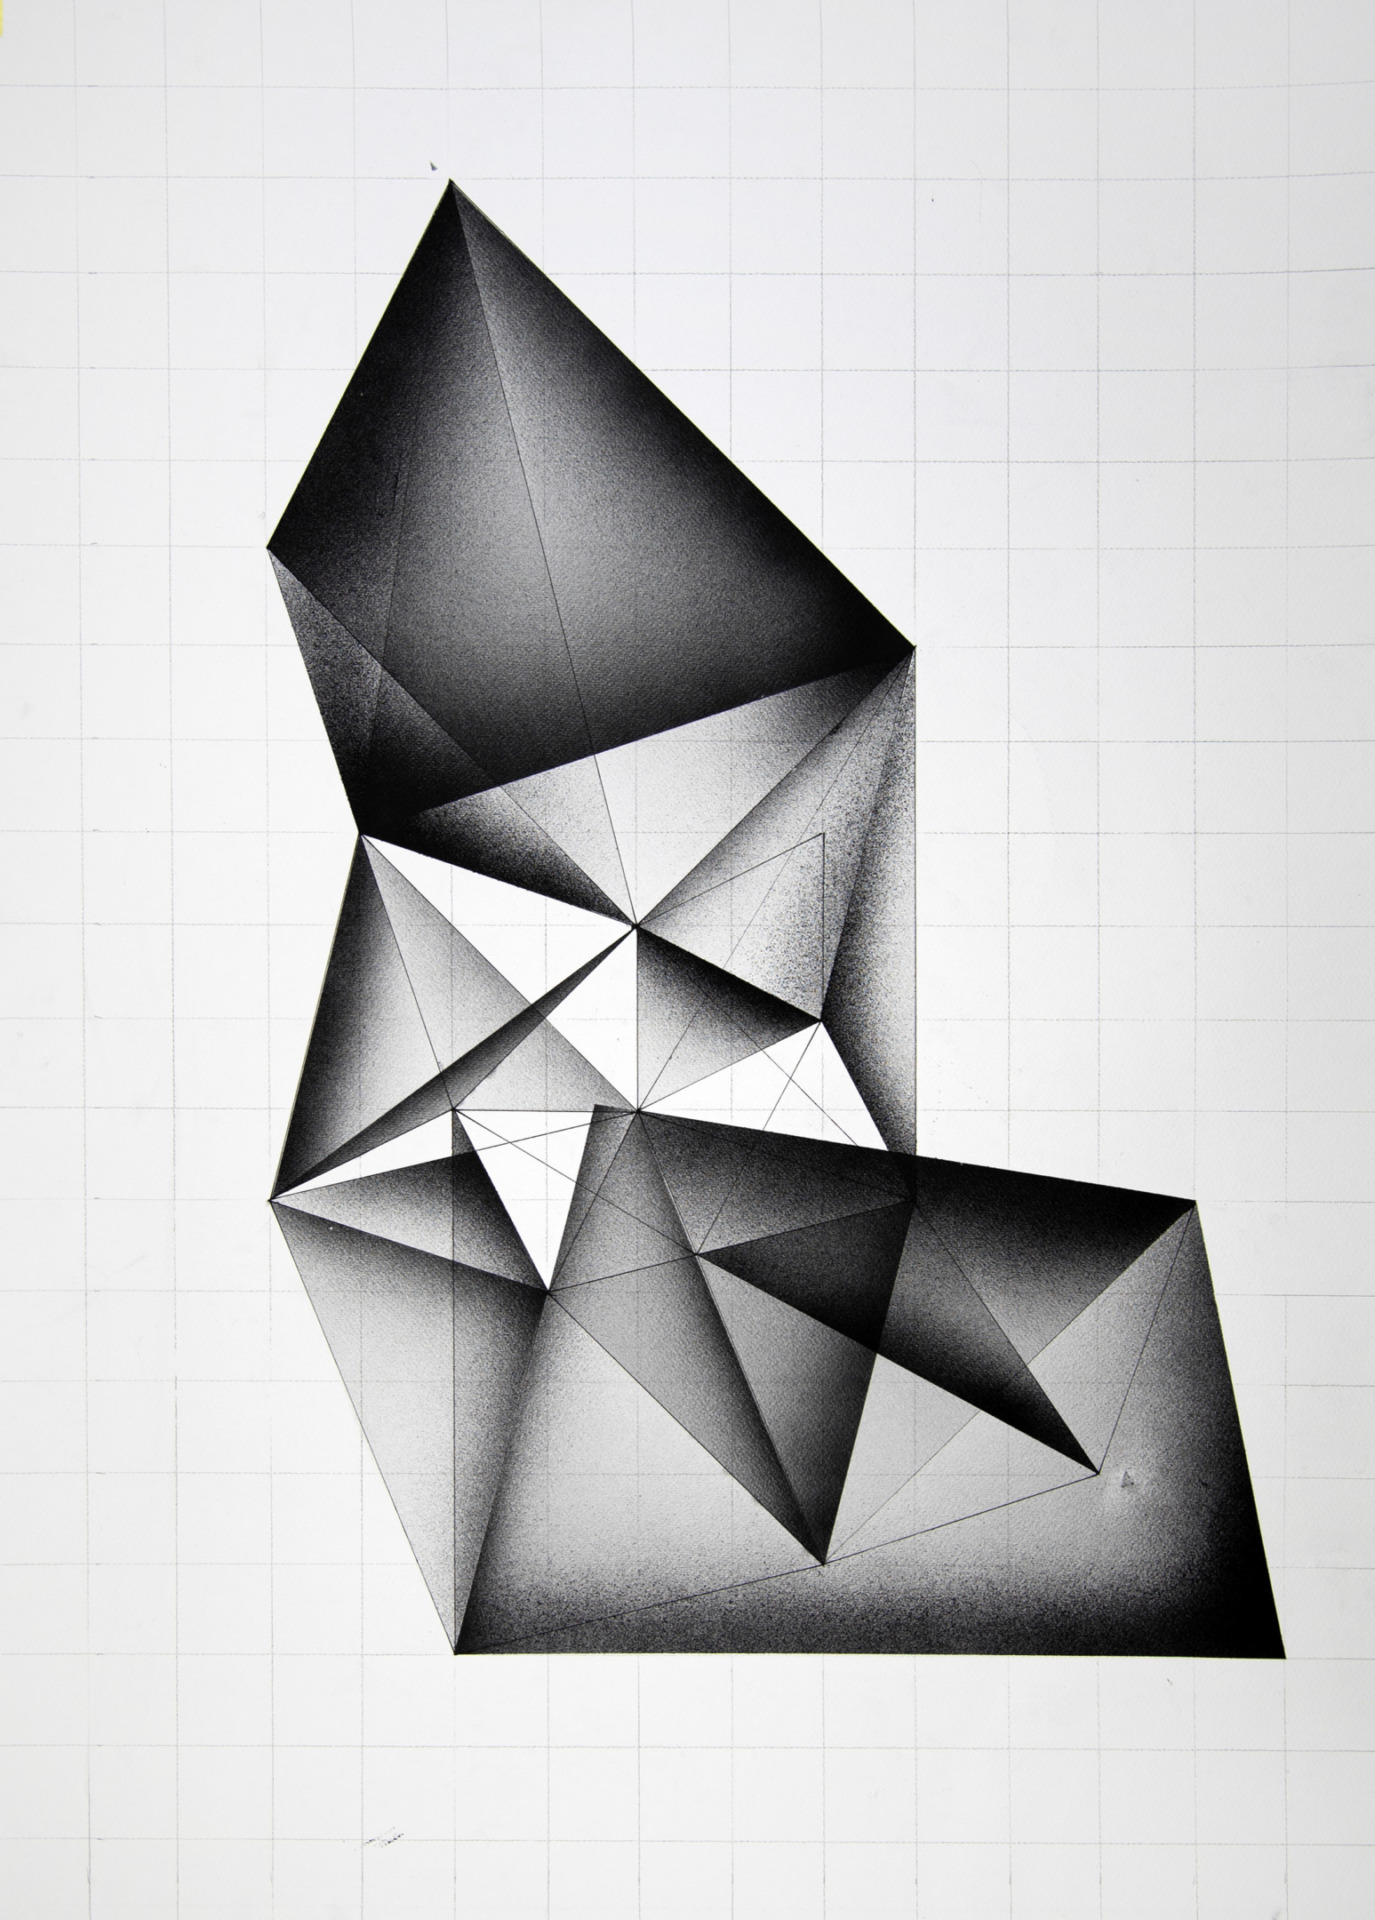 Gyula Sagi, contemporary art, crystals geometric art